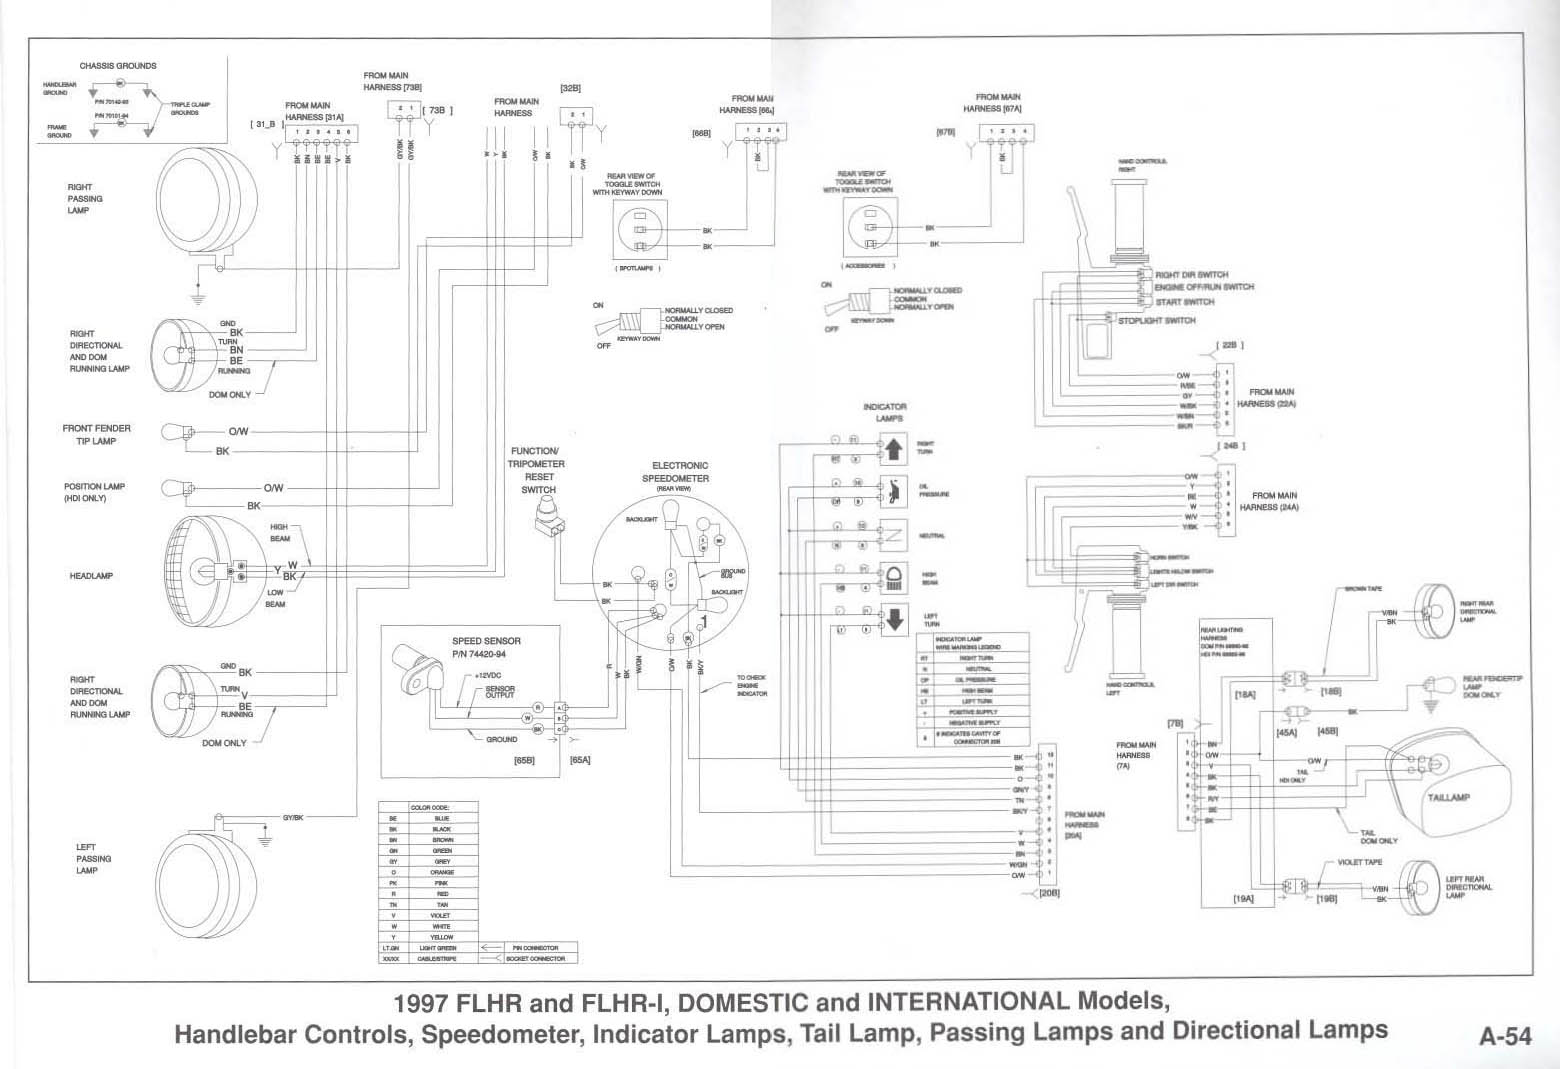 [SCHEMATICS_4CA]  HB_9532] Wiring Diagram 1130Cccom The 1 Harley Davidson Vrod Forum Wiring  Diagram | 2007 Harley Road King Wiring Diagram |  | Arivo Aidew Illuminateatx Librar Wiring 101